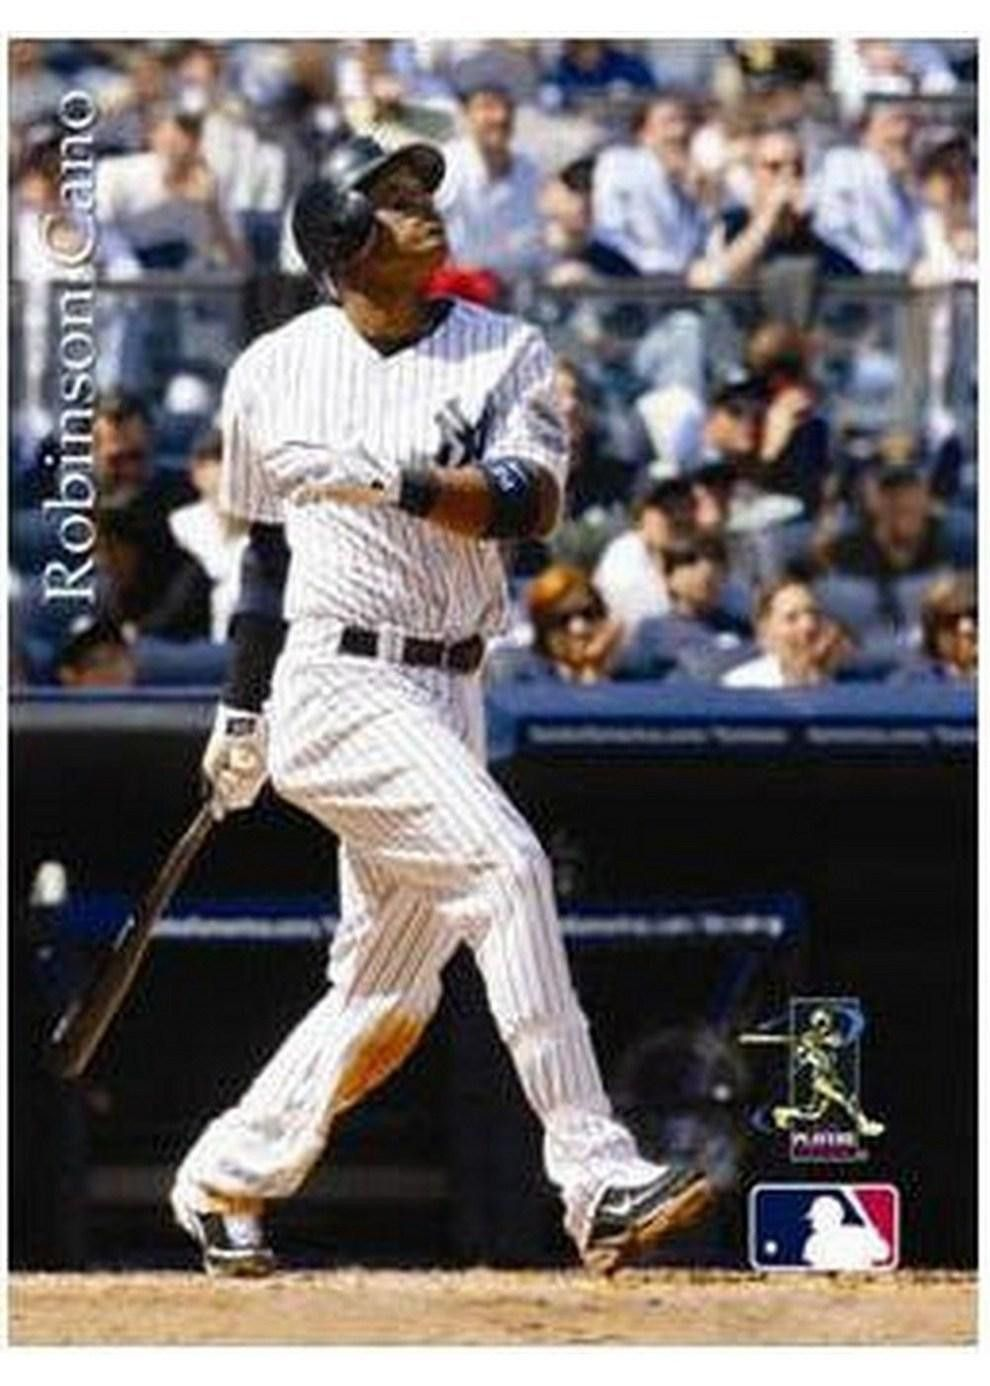 Mlb New York Yankees Artissimo Robinson Cano 8 X 10 Canvas Robinson Cano New York Yankees